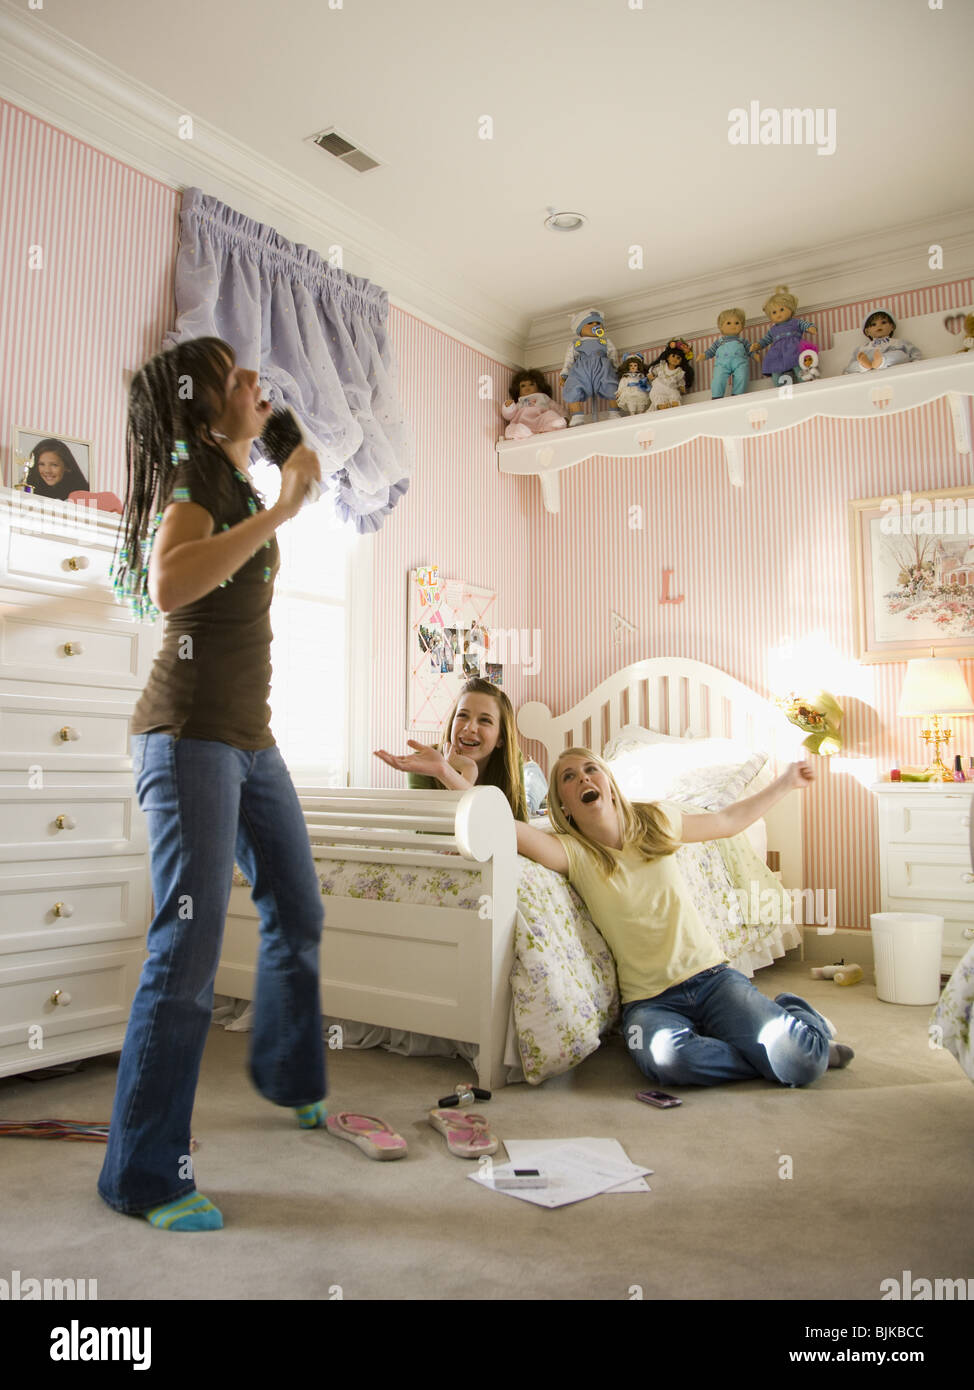 Girl Singing Into Hairbrush In Bedroom With Girlfriends Laughing Stock Photo Alamy